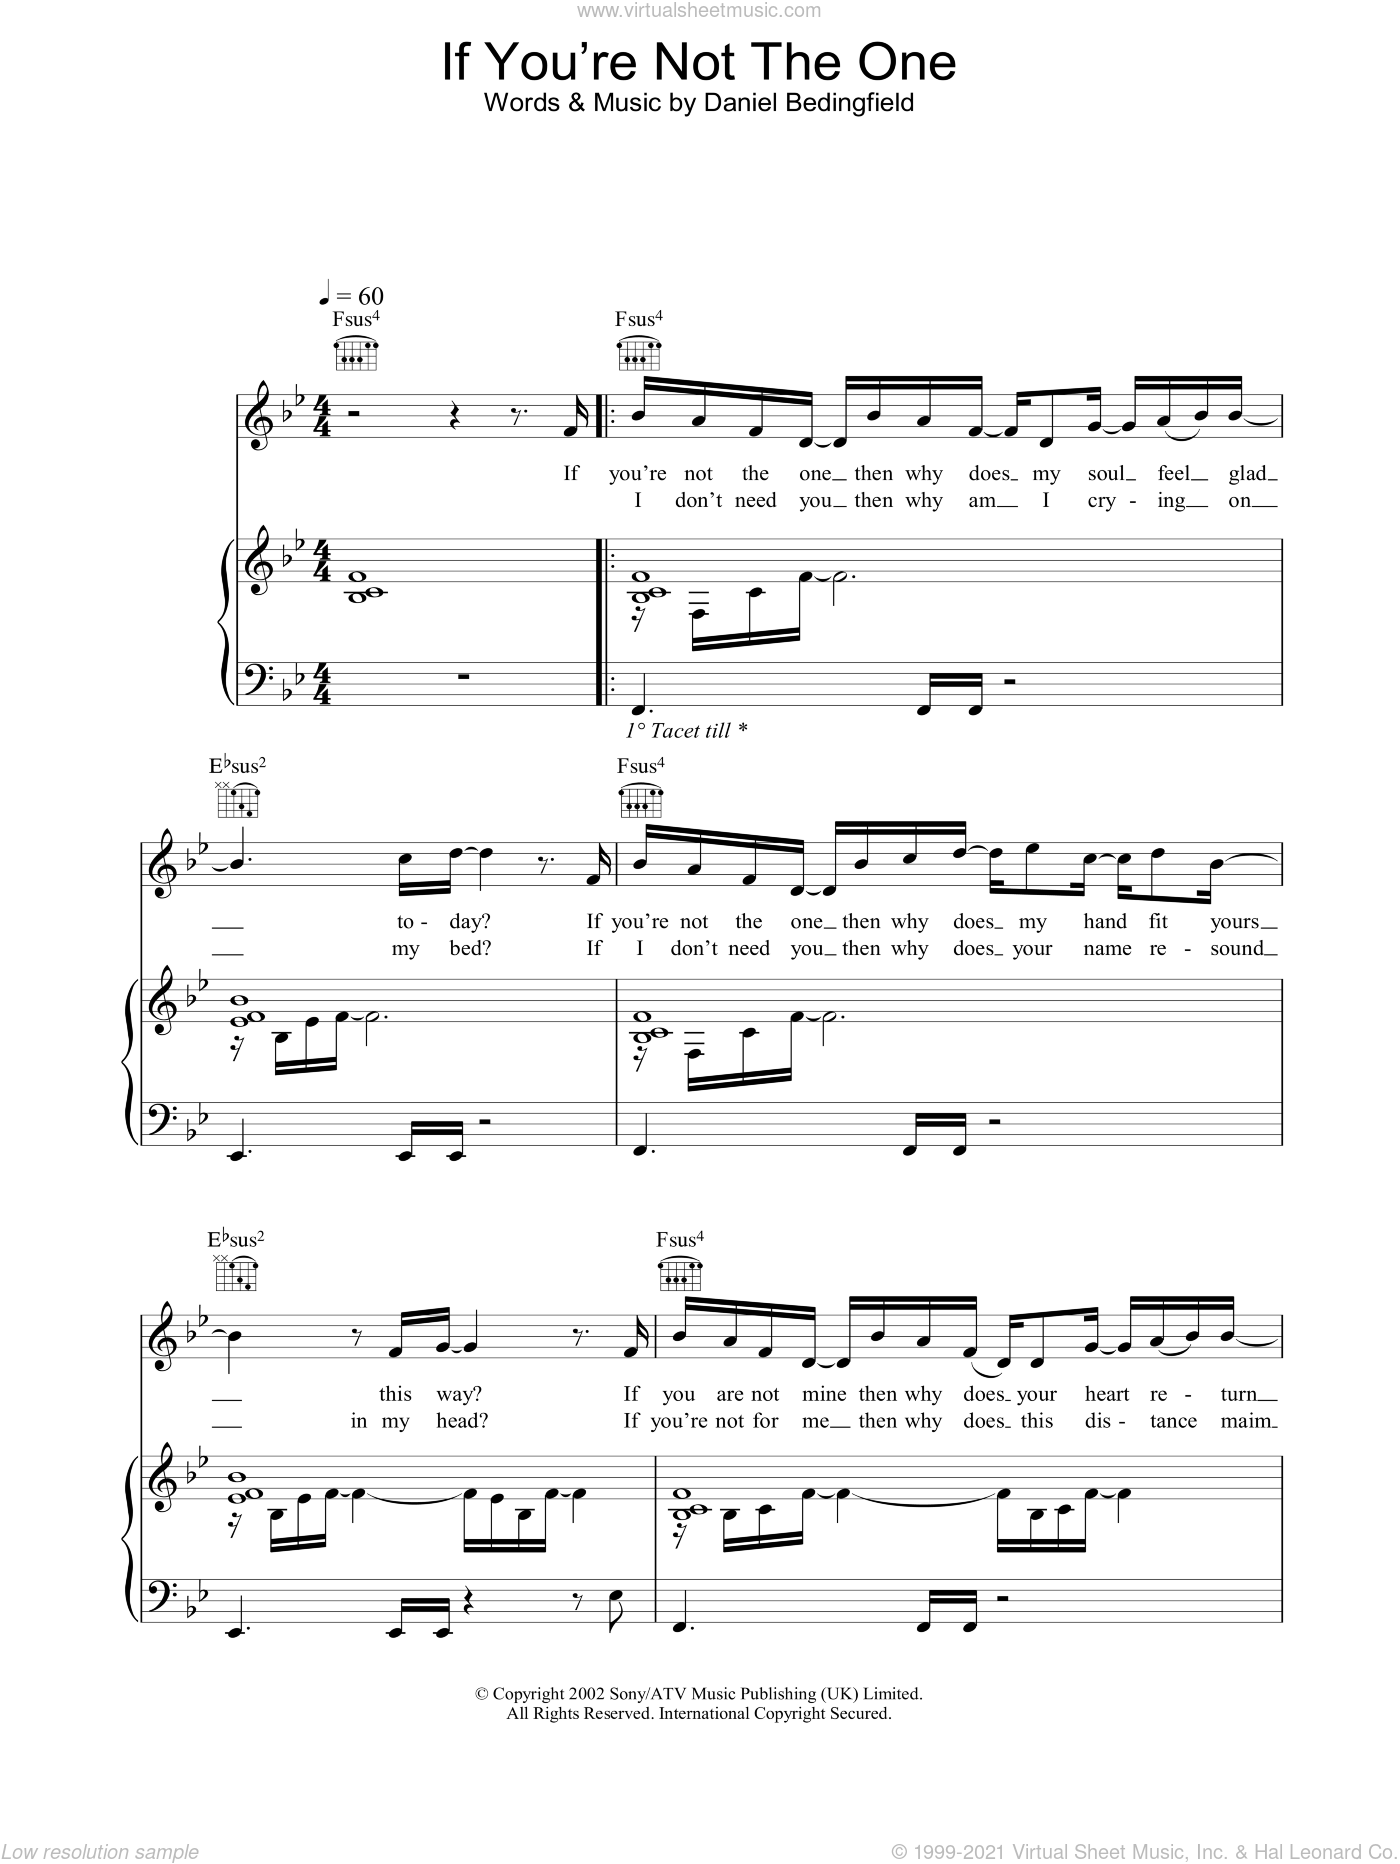 If You're Not The One sheet music for voice, piano or guitar by Daniel Bedingfield, intermediate voice, piano or guitar. Score Image Preview.